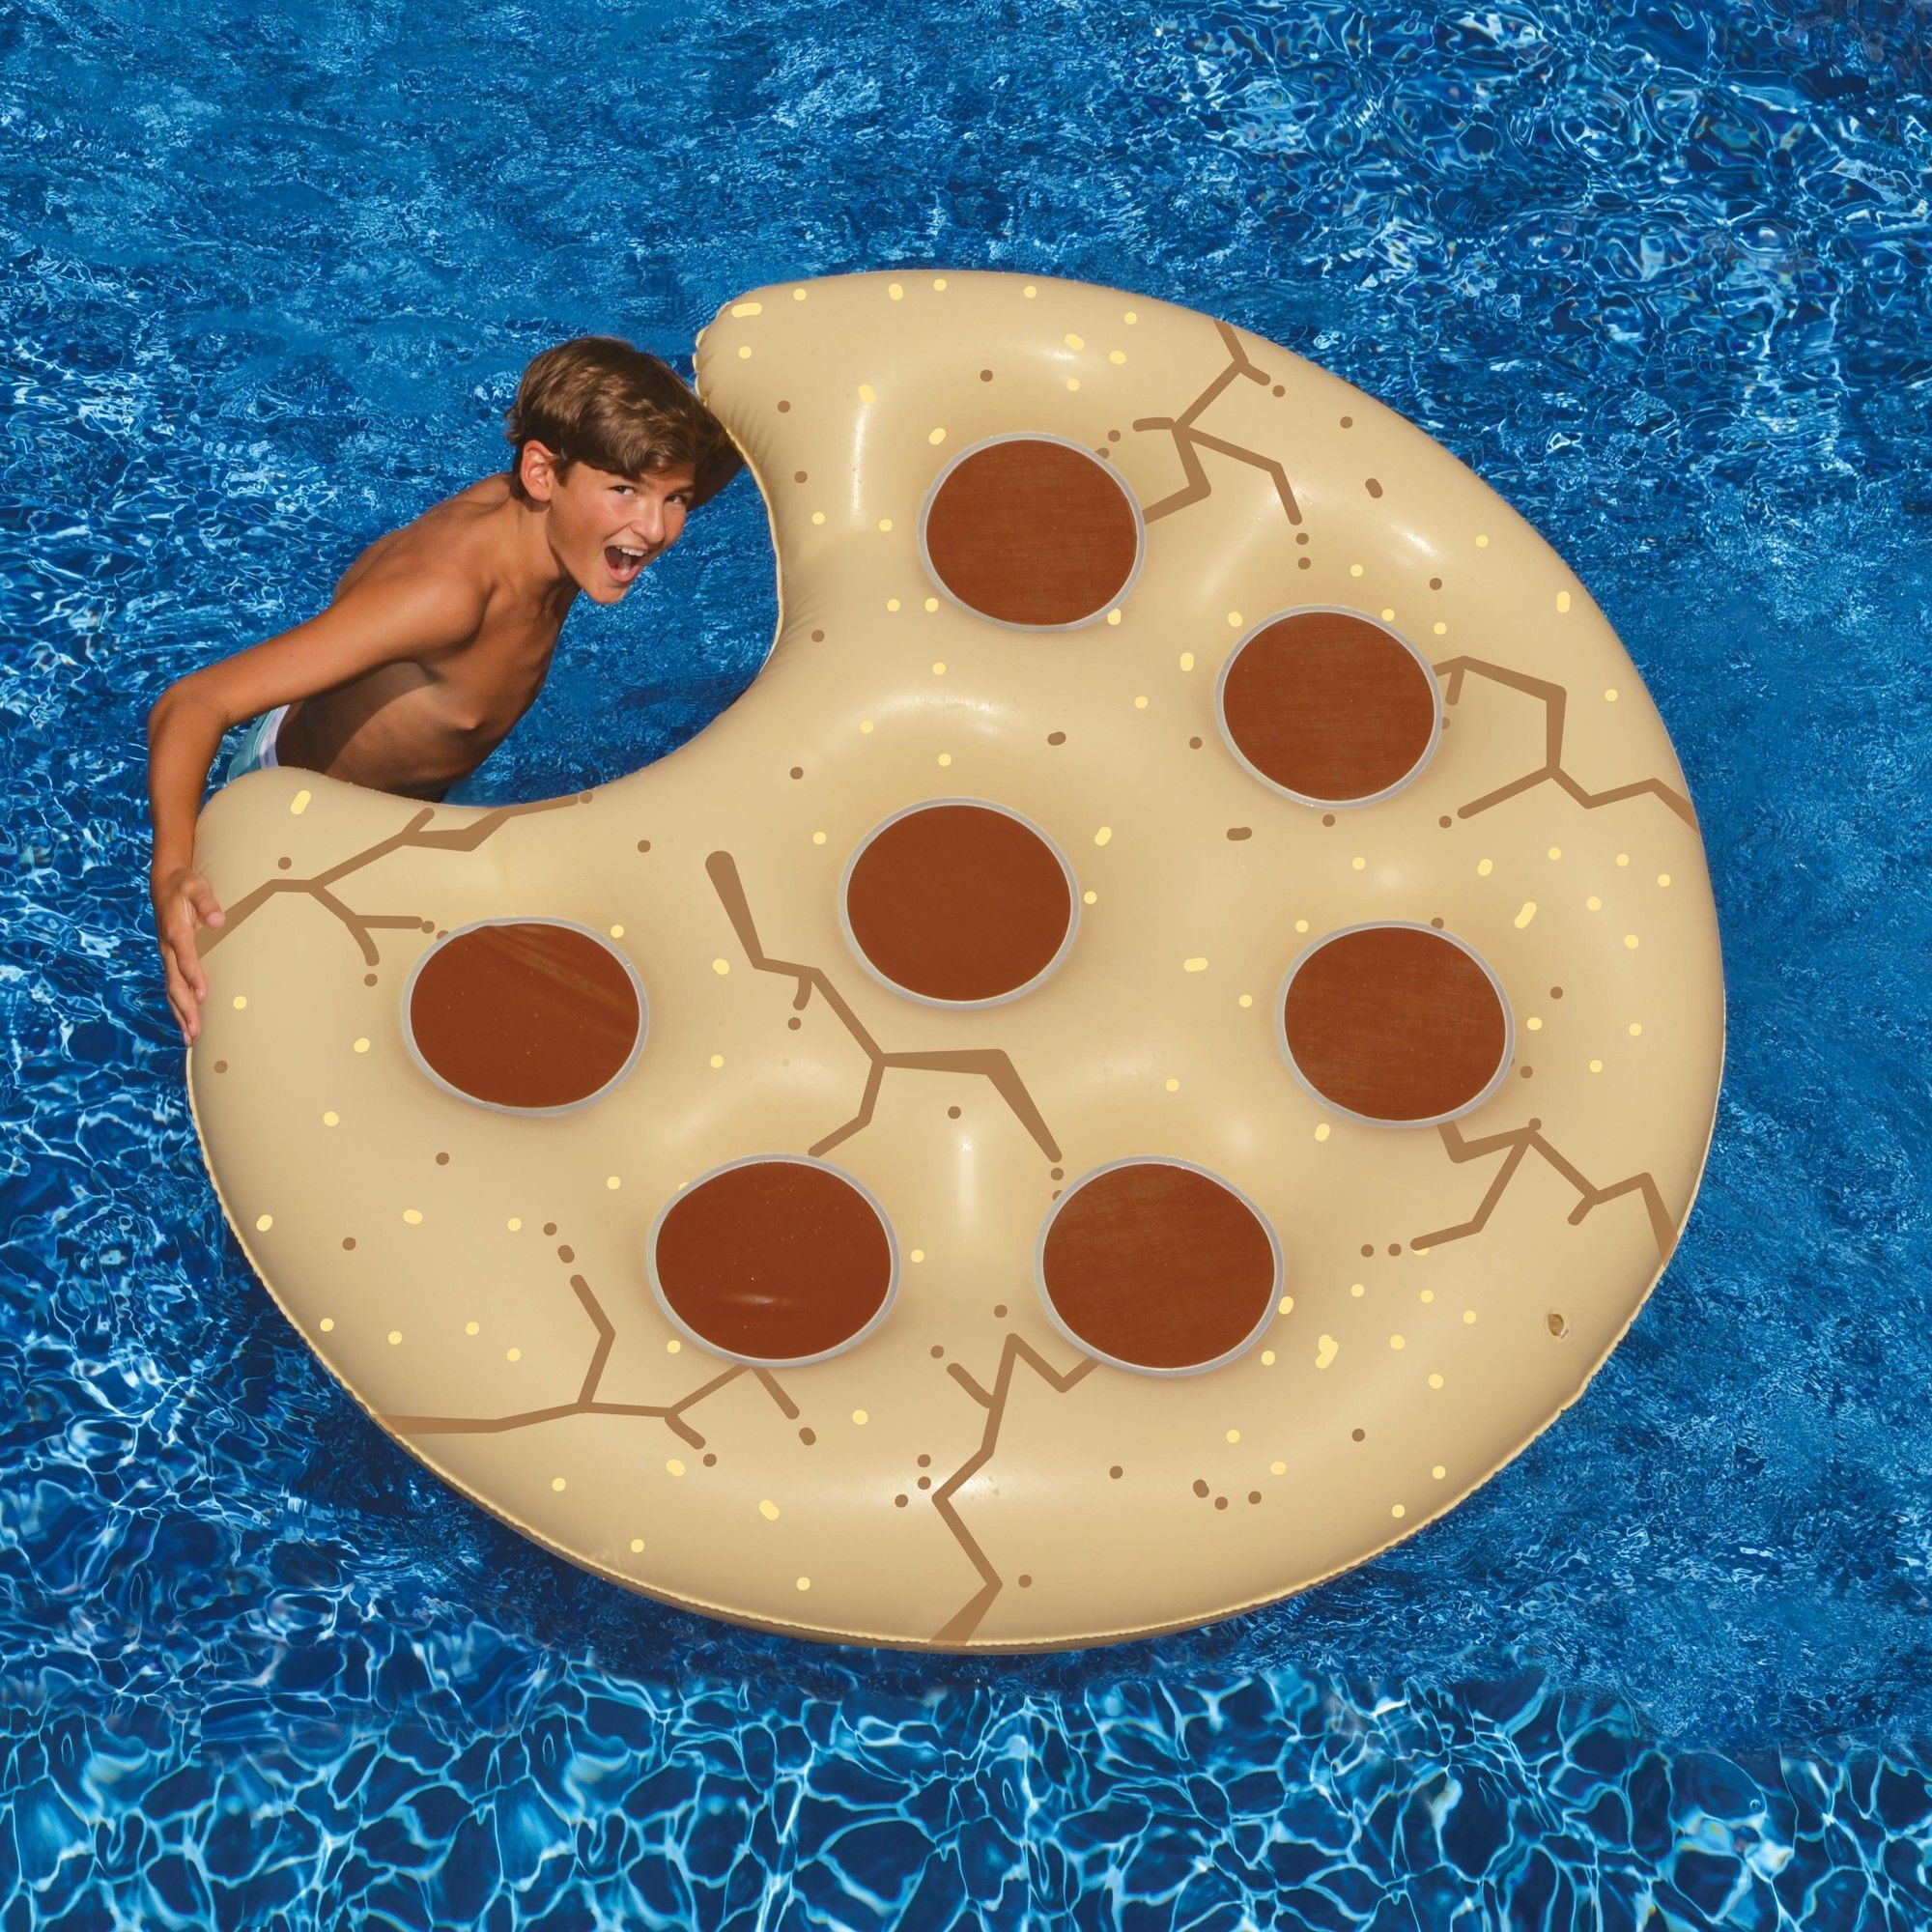 Poolzubehör Fun Cookie Pool Float Fun Inflatable Camping Cool Pool Floats